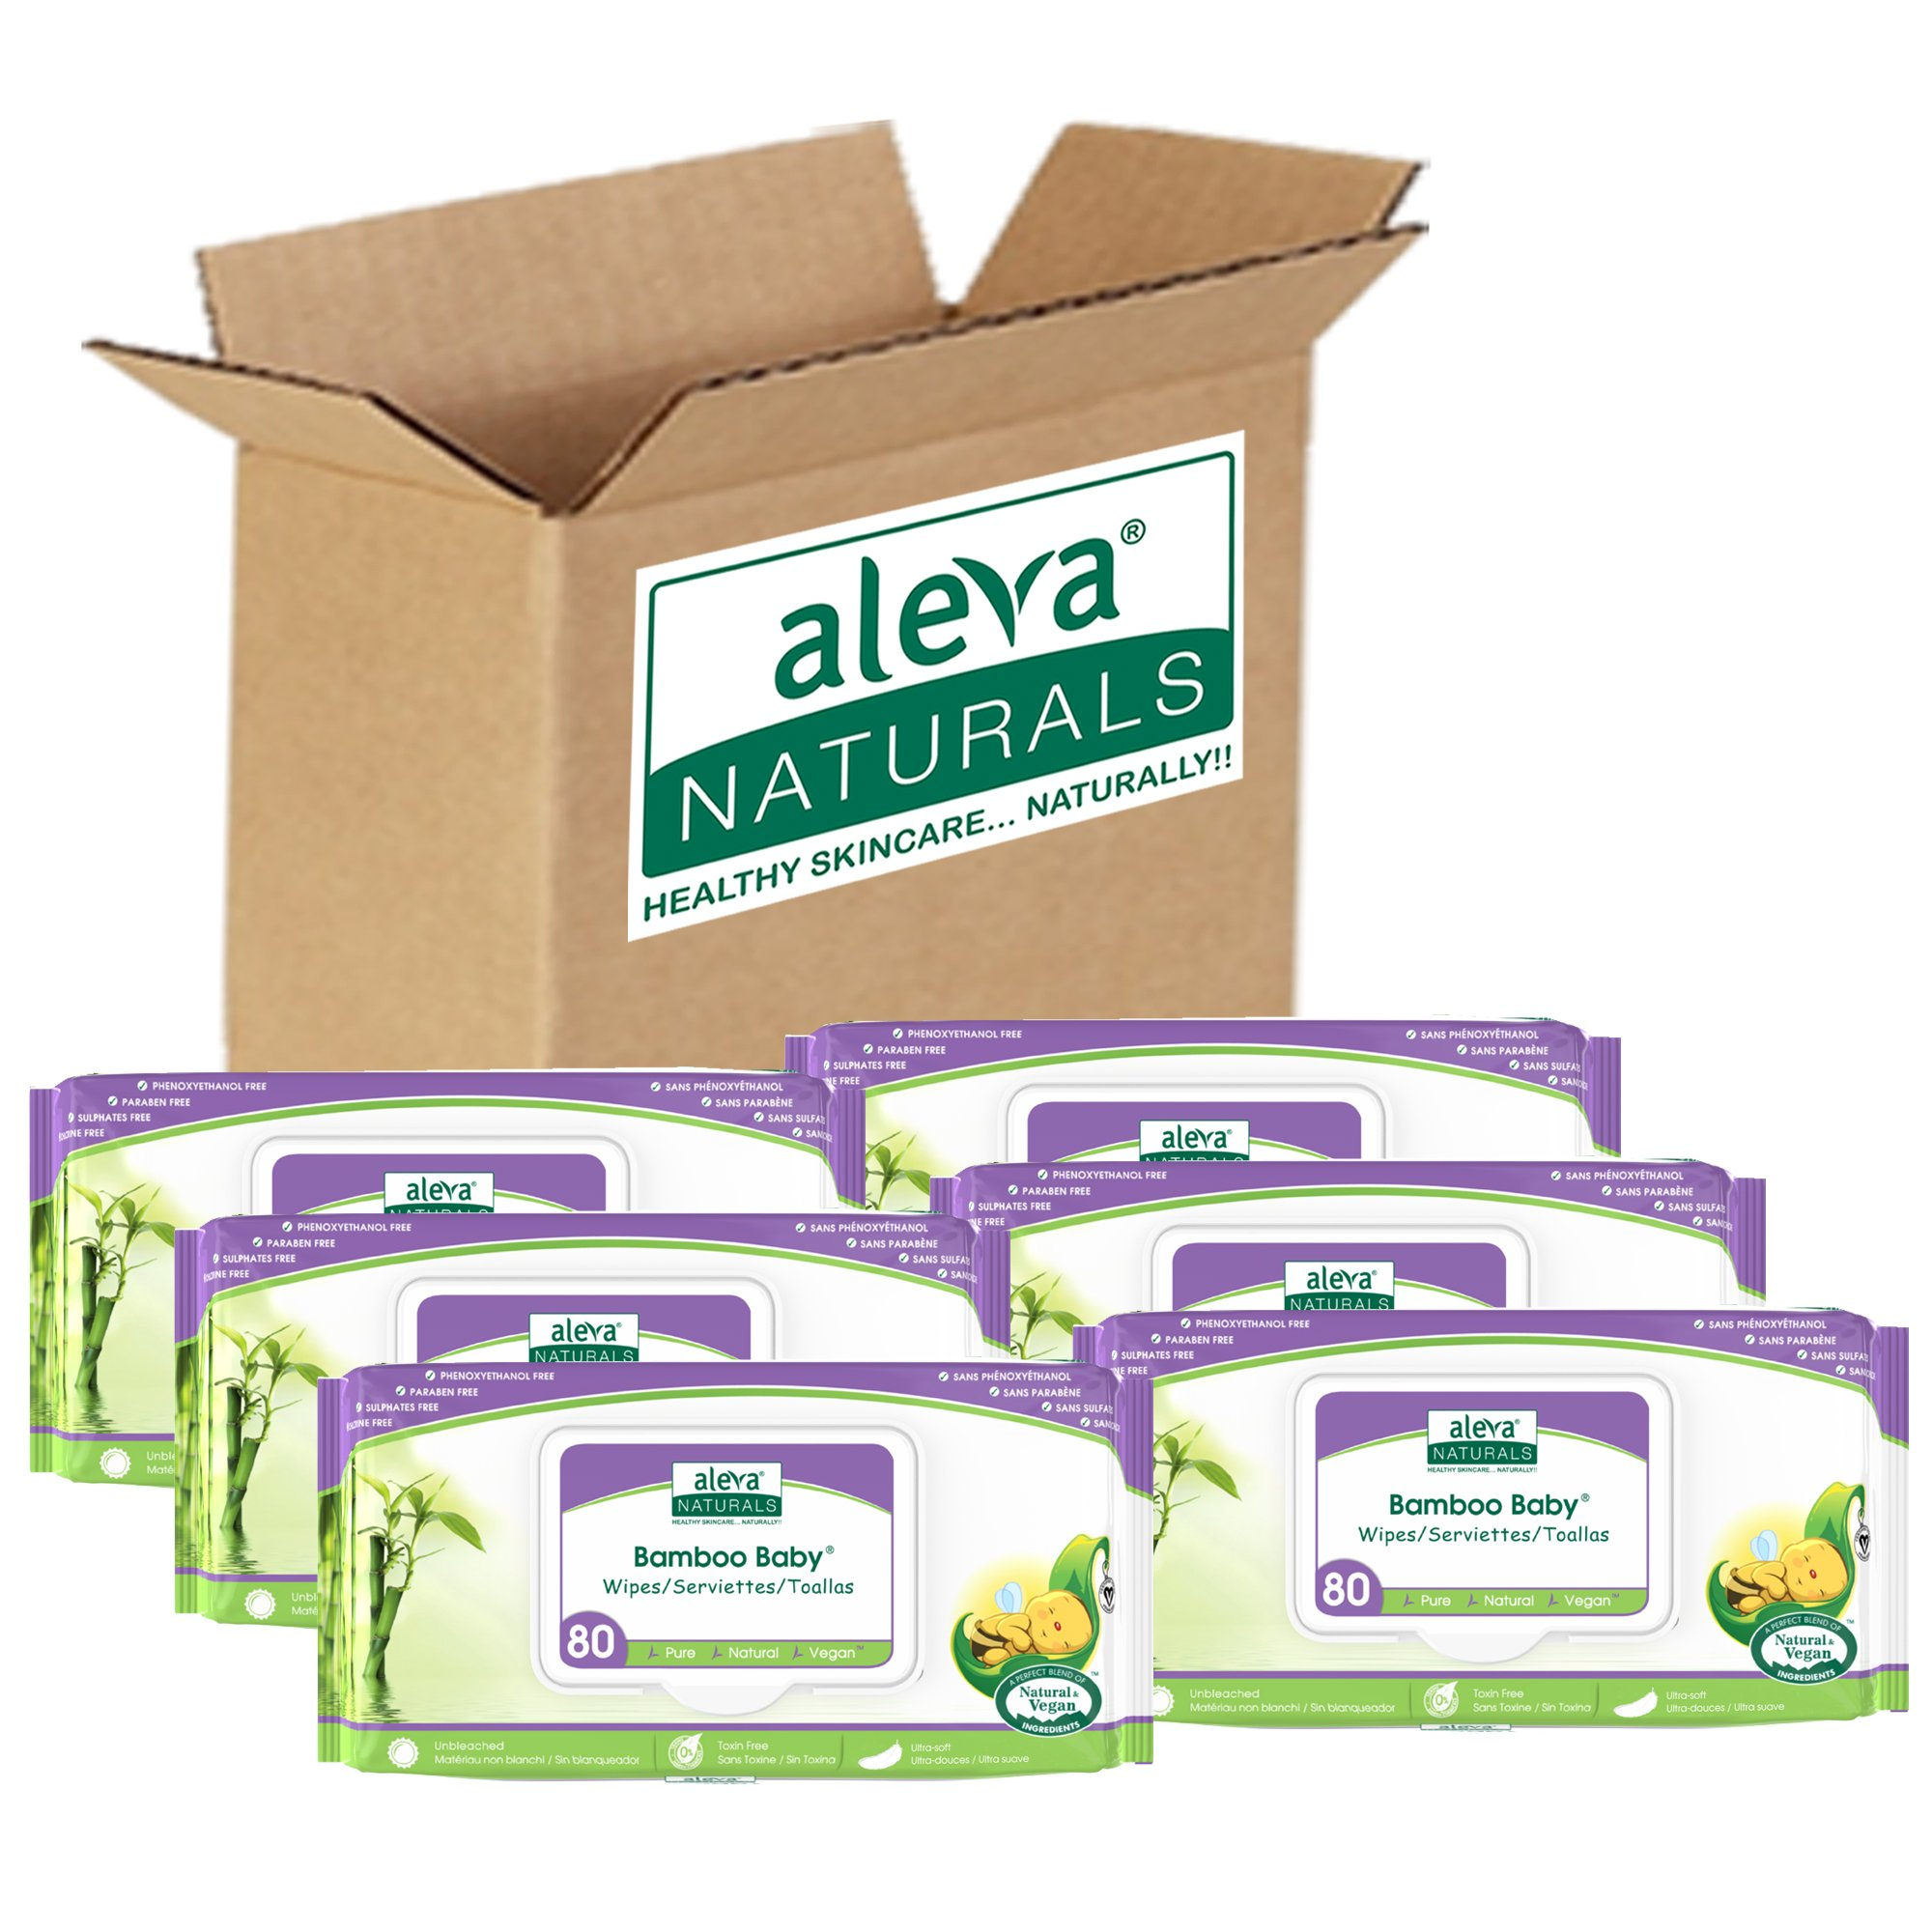 Aleva Naturals Bamboo Baby Wipes | Perfect for Sensitive Skin | Extra Strong and Ultra Soft | Natural and Organic Ingredients | Certified Vegan | 6 Packs of 80ct - Total of 480ct by Aleva Naturals